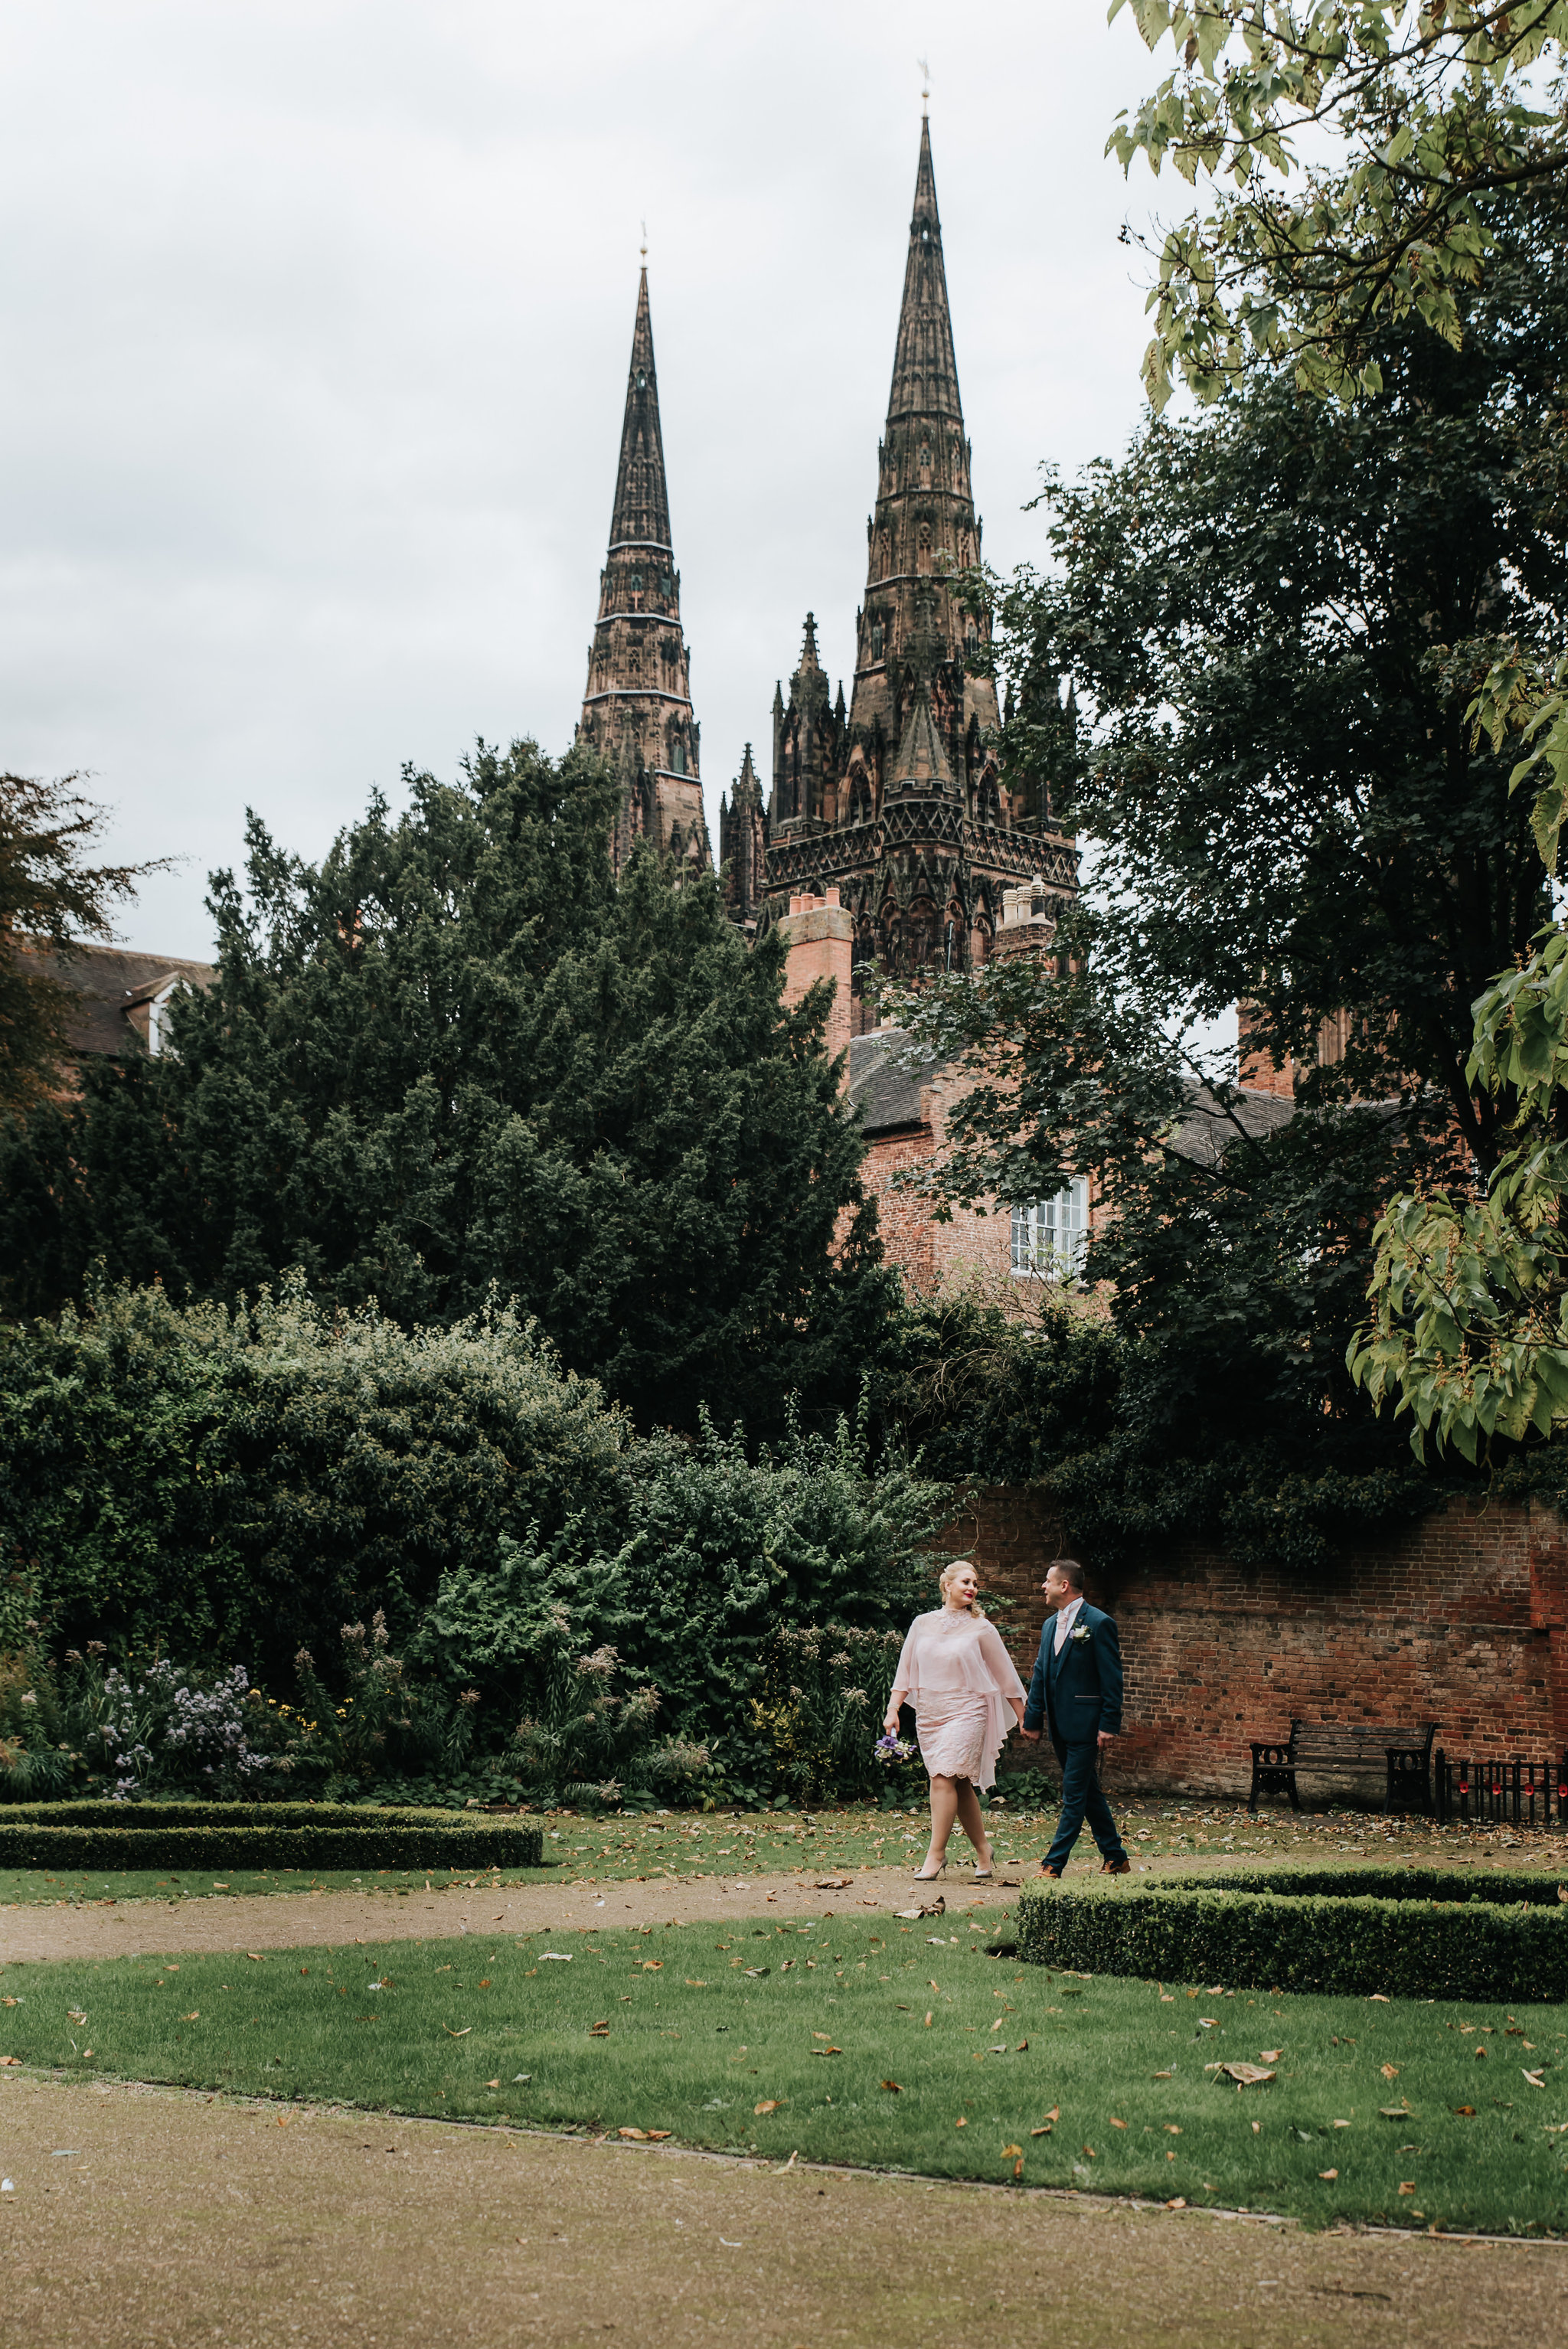 The beautiful Spires of Lichfield Catherdral can be seen in the background.  Lichfield Catherdral is the only medieval  English cathedral with three spires .